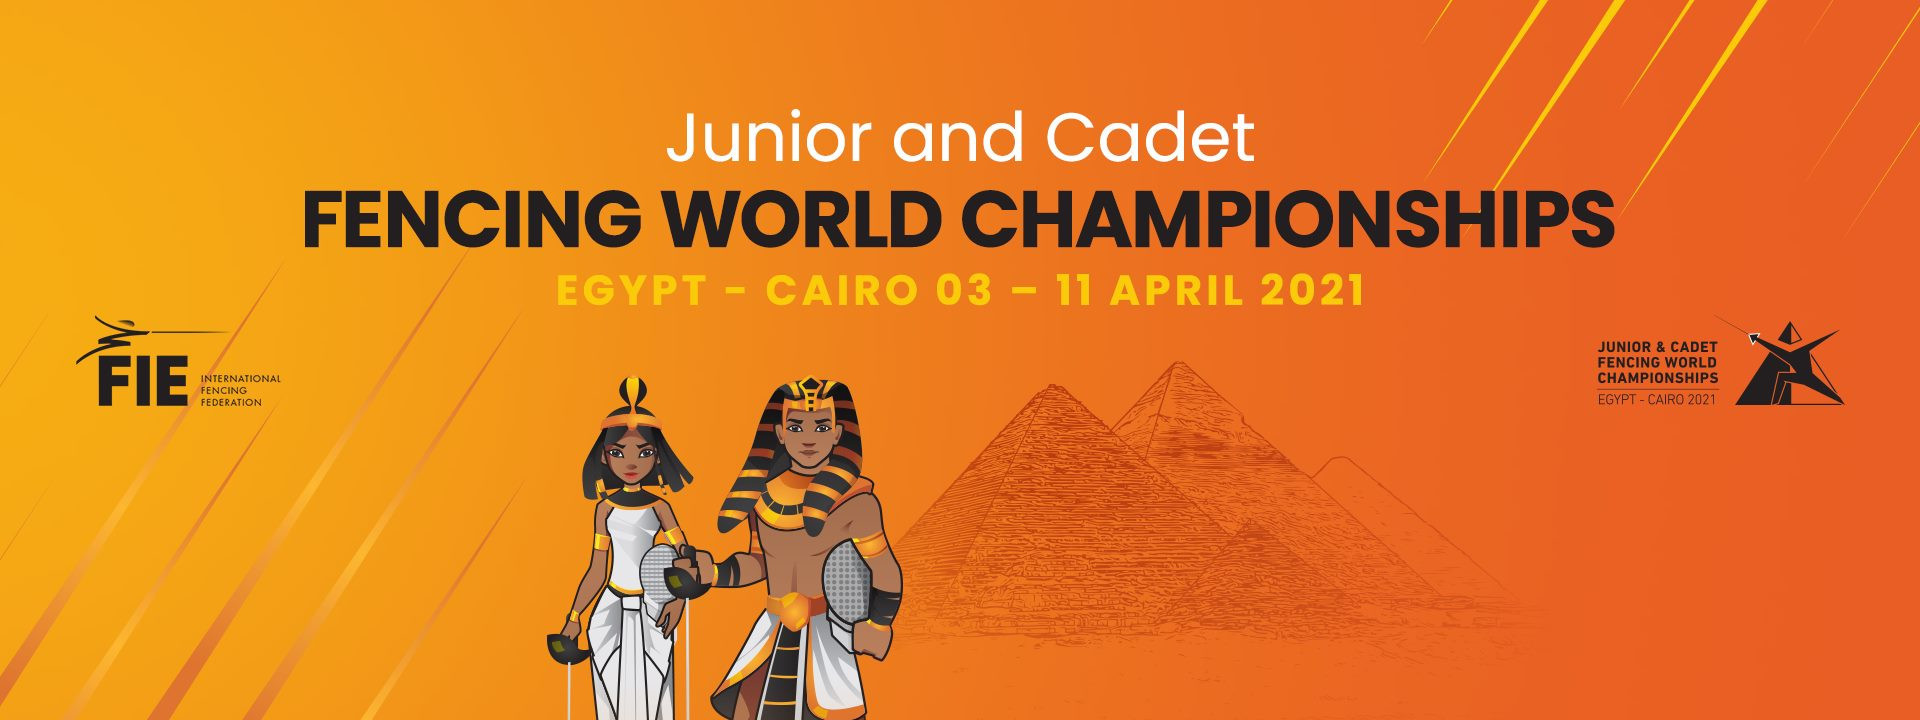 South Korea and Russia win sabre titles at Junior World Fencing Championships